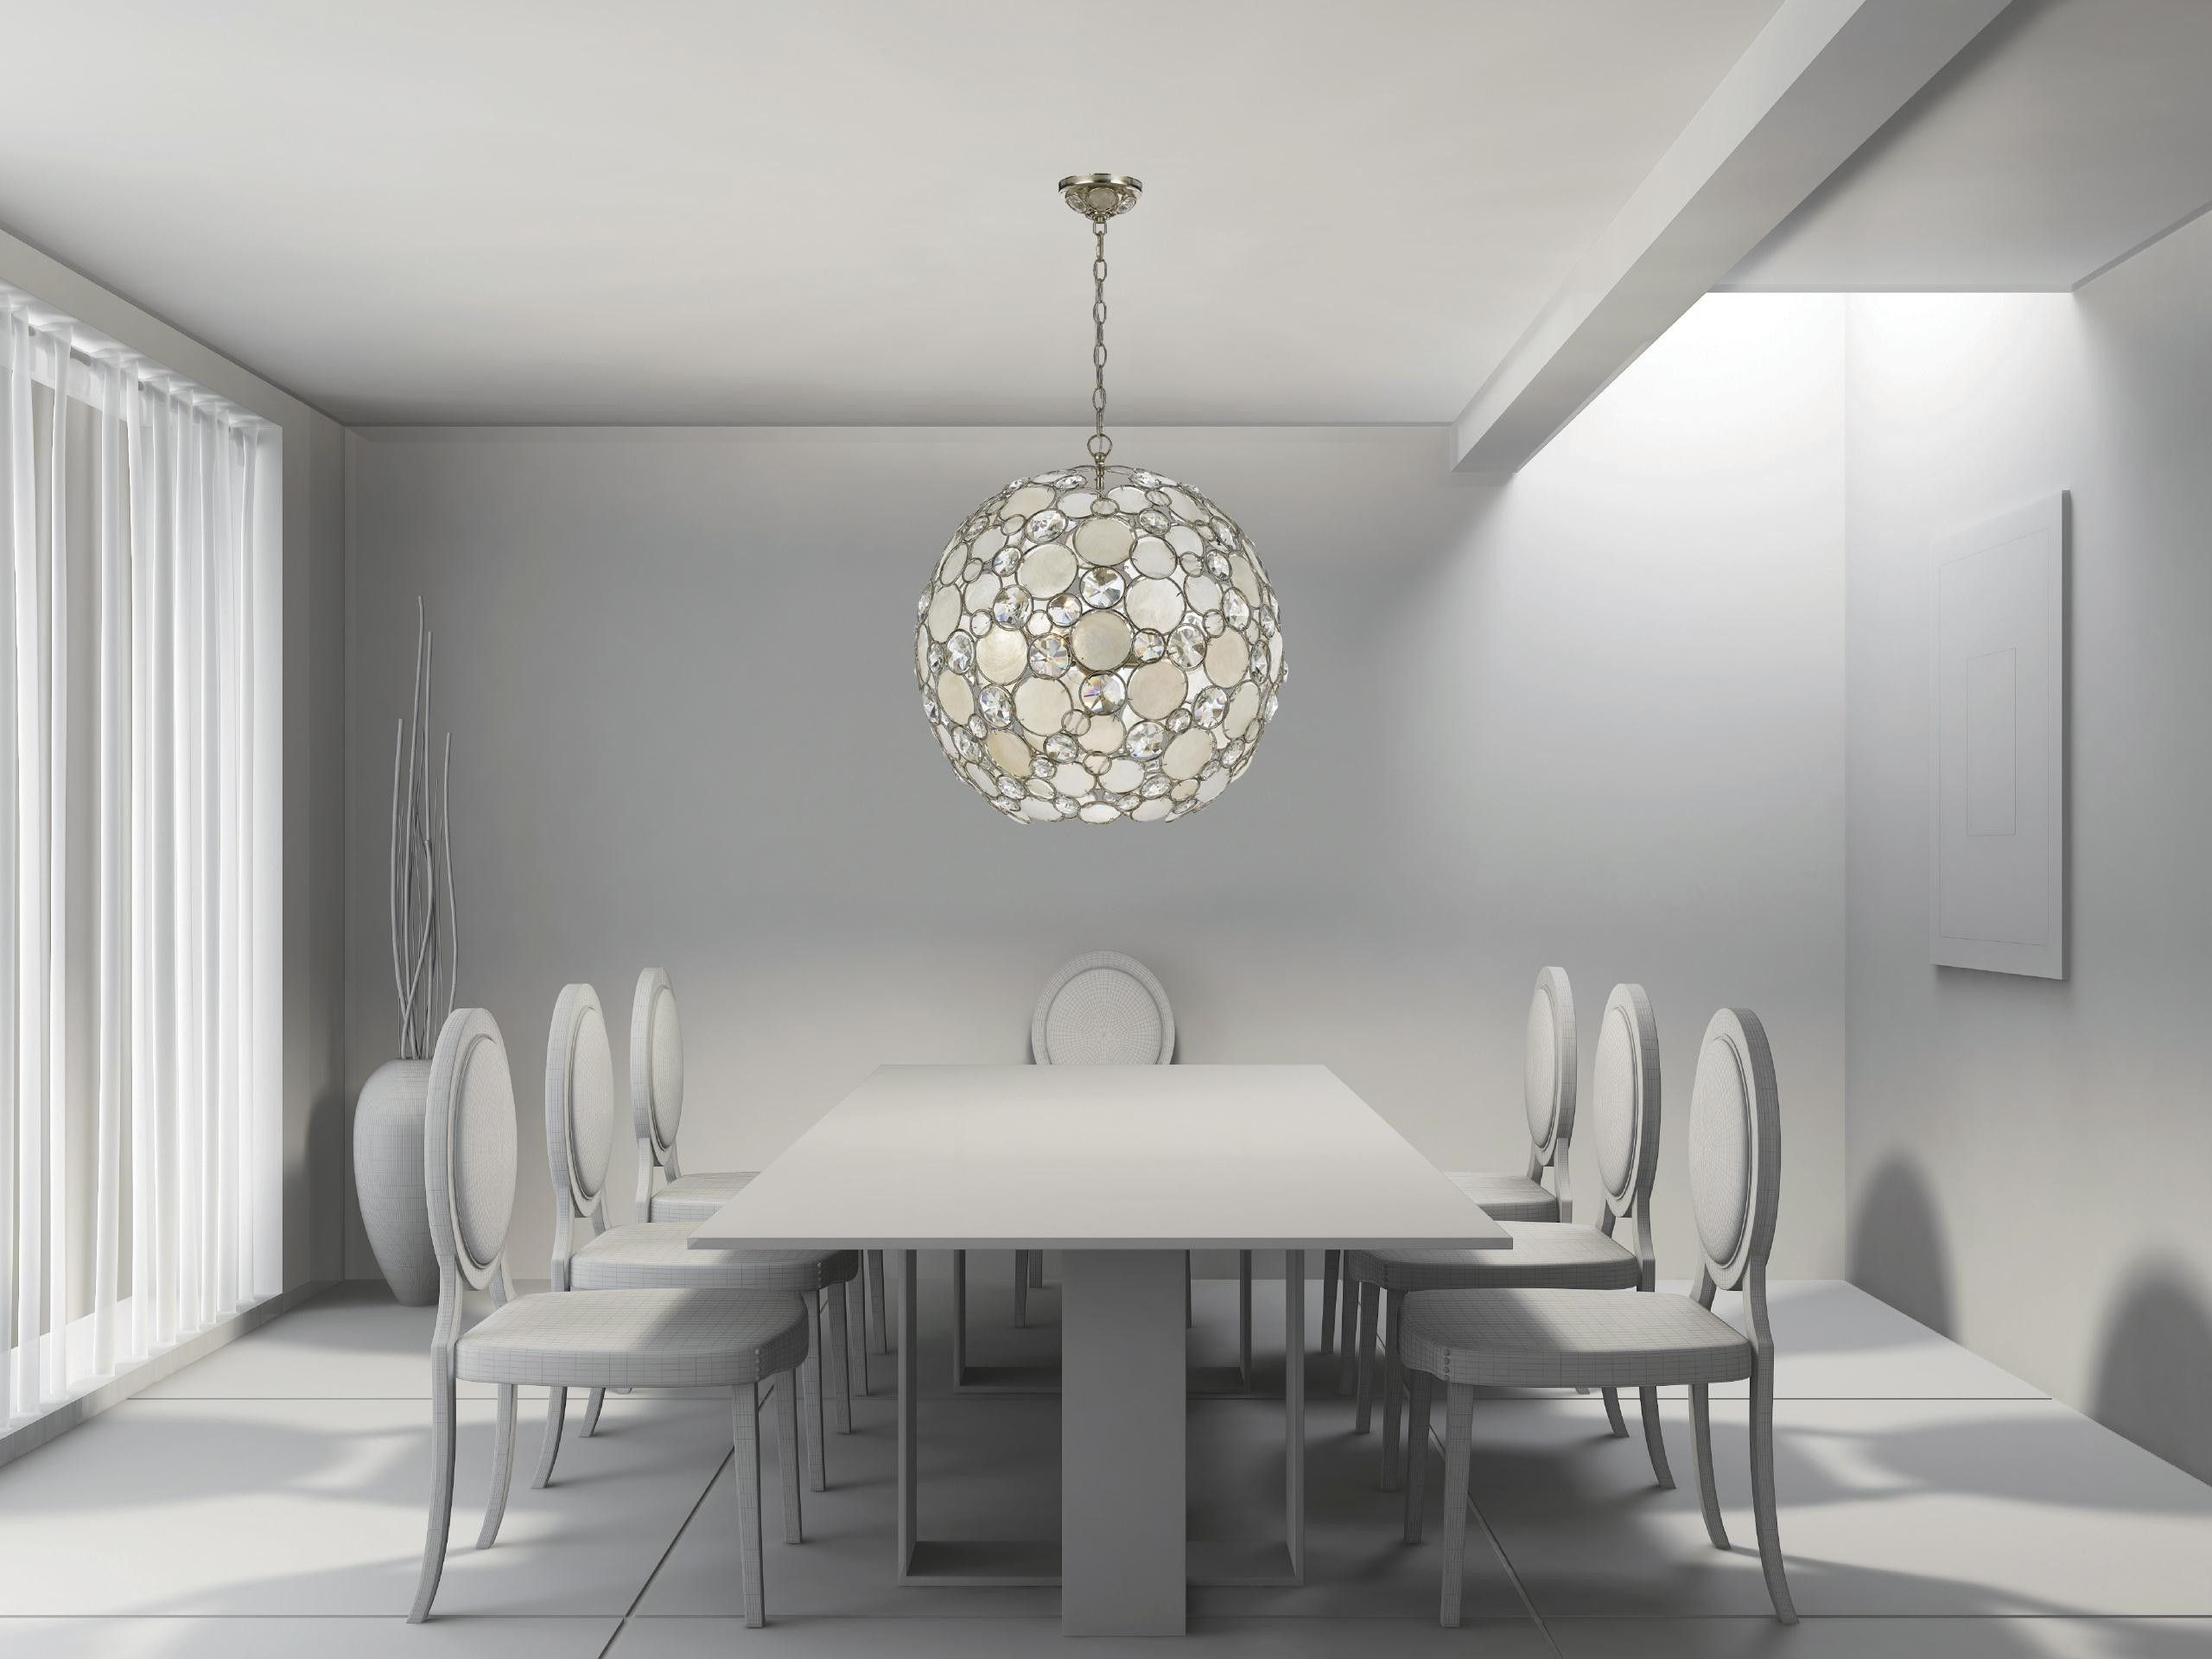 Tiffany Chandeliers Dining Chandelier For Rooms Room Light Fixtures Extra Large Modern